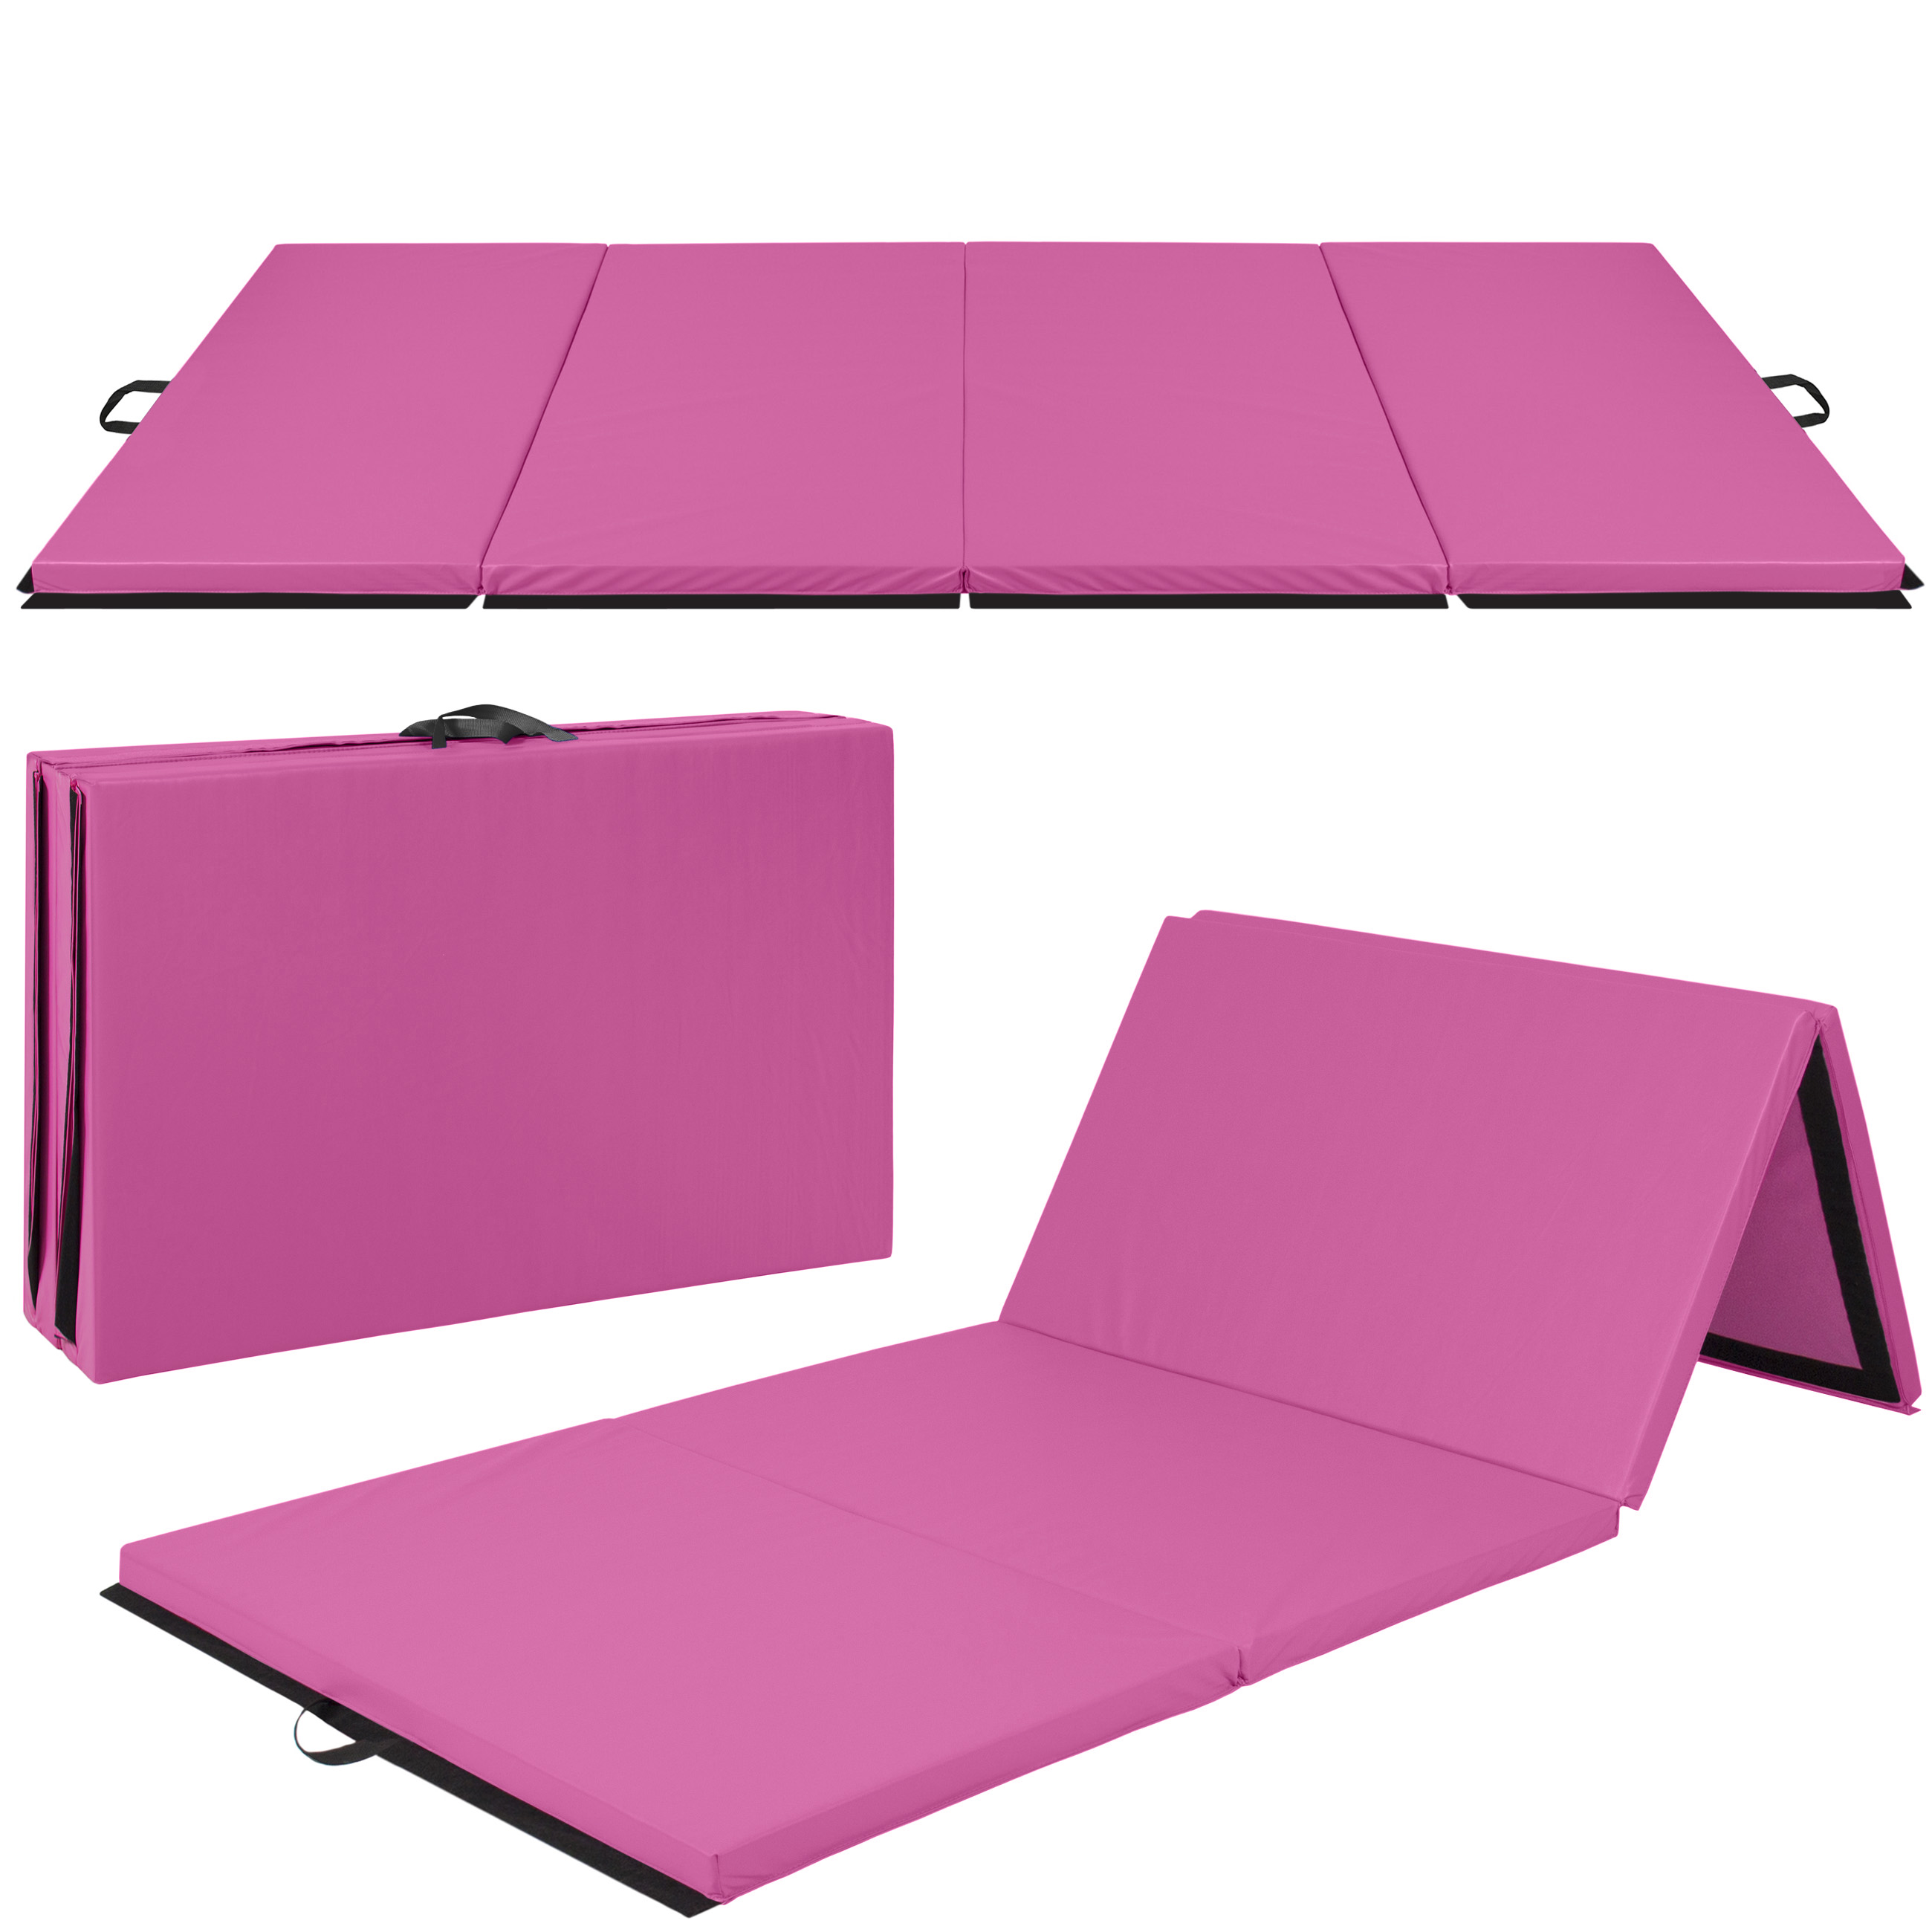 Best Choice Products 8ft Folding Exercise Gym Mat for Gymnastics, Aerobics, Yoga, Martial Arts - Pink